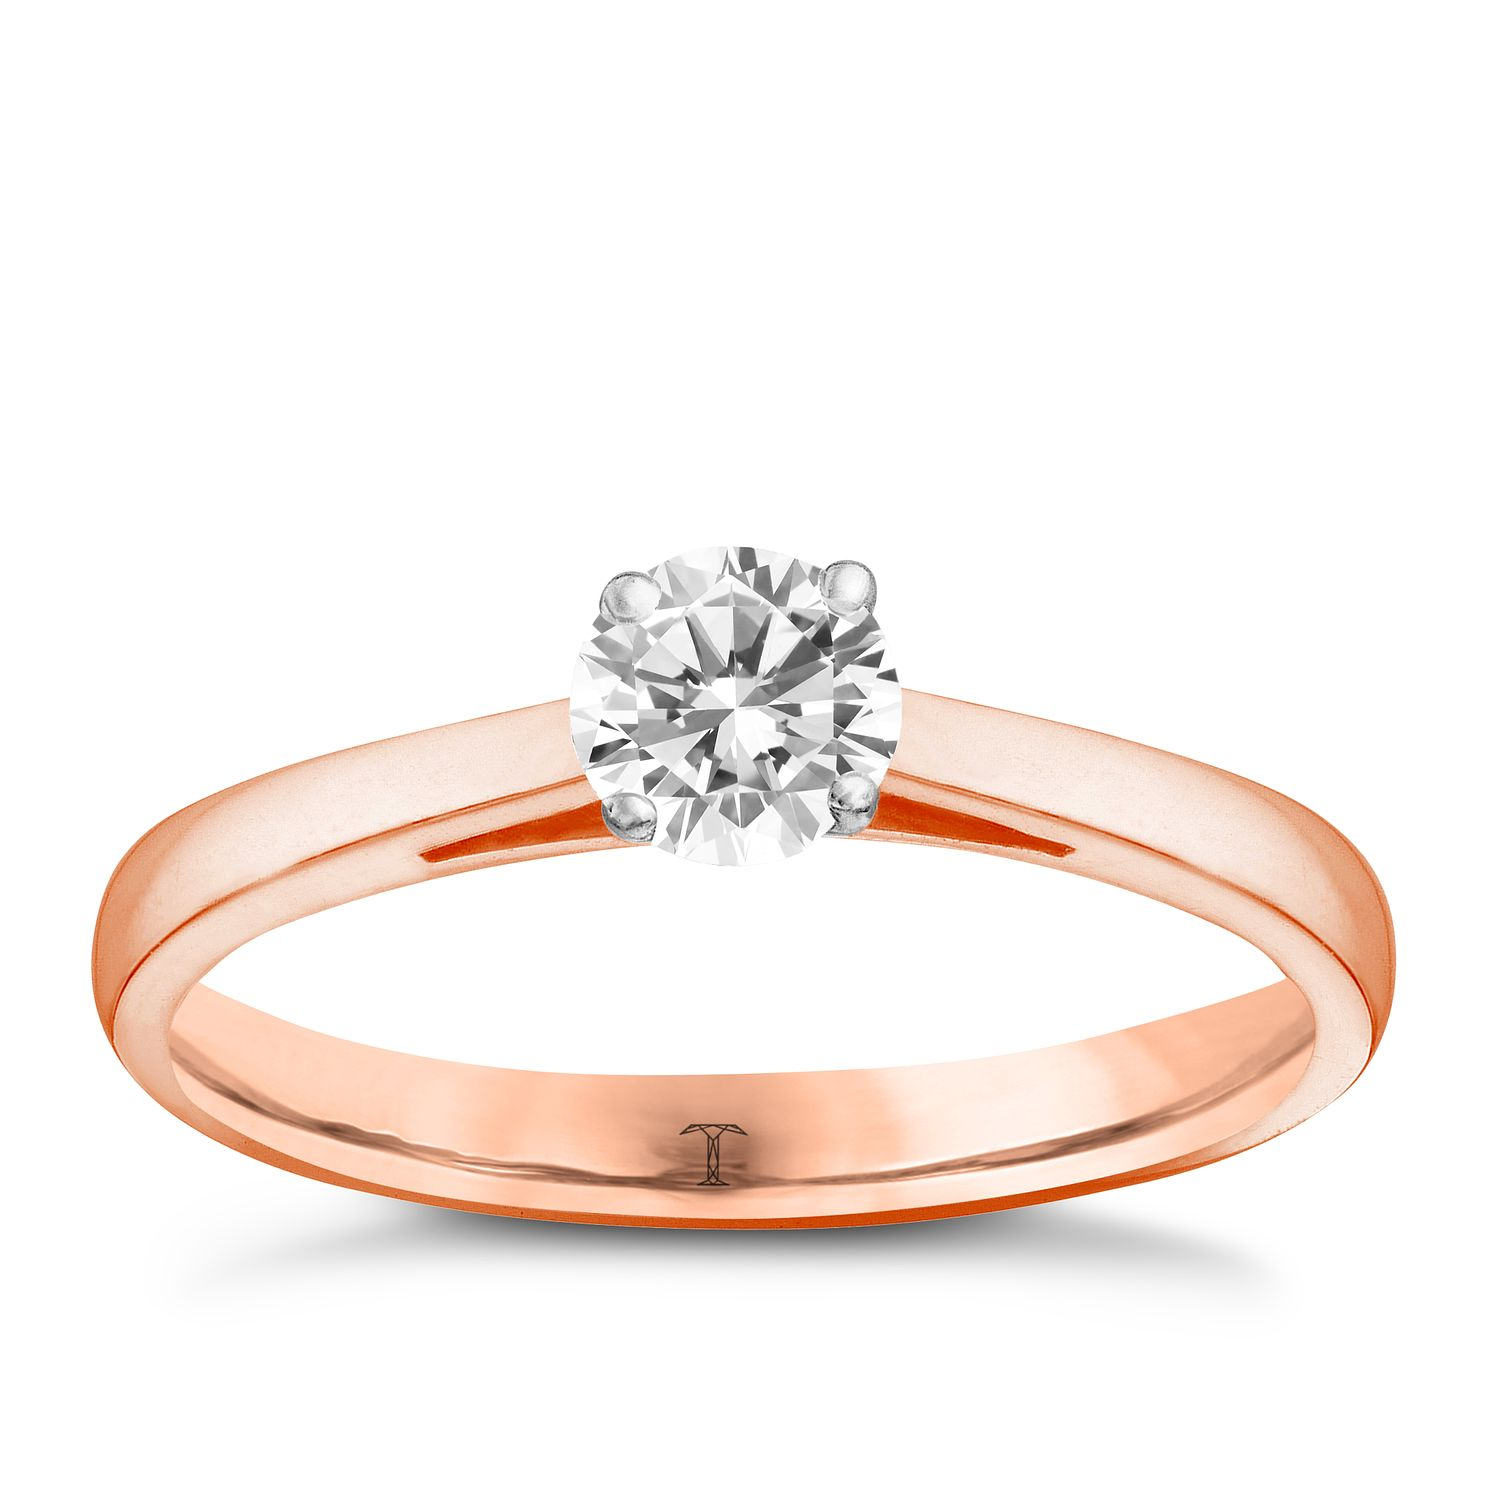 Tolkowsky 18ct Rose Gold 2/5ct I-I1 Diamond Ring - Product number 3980030